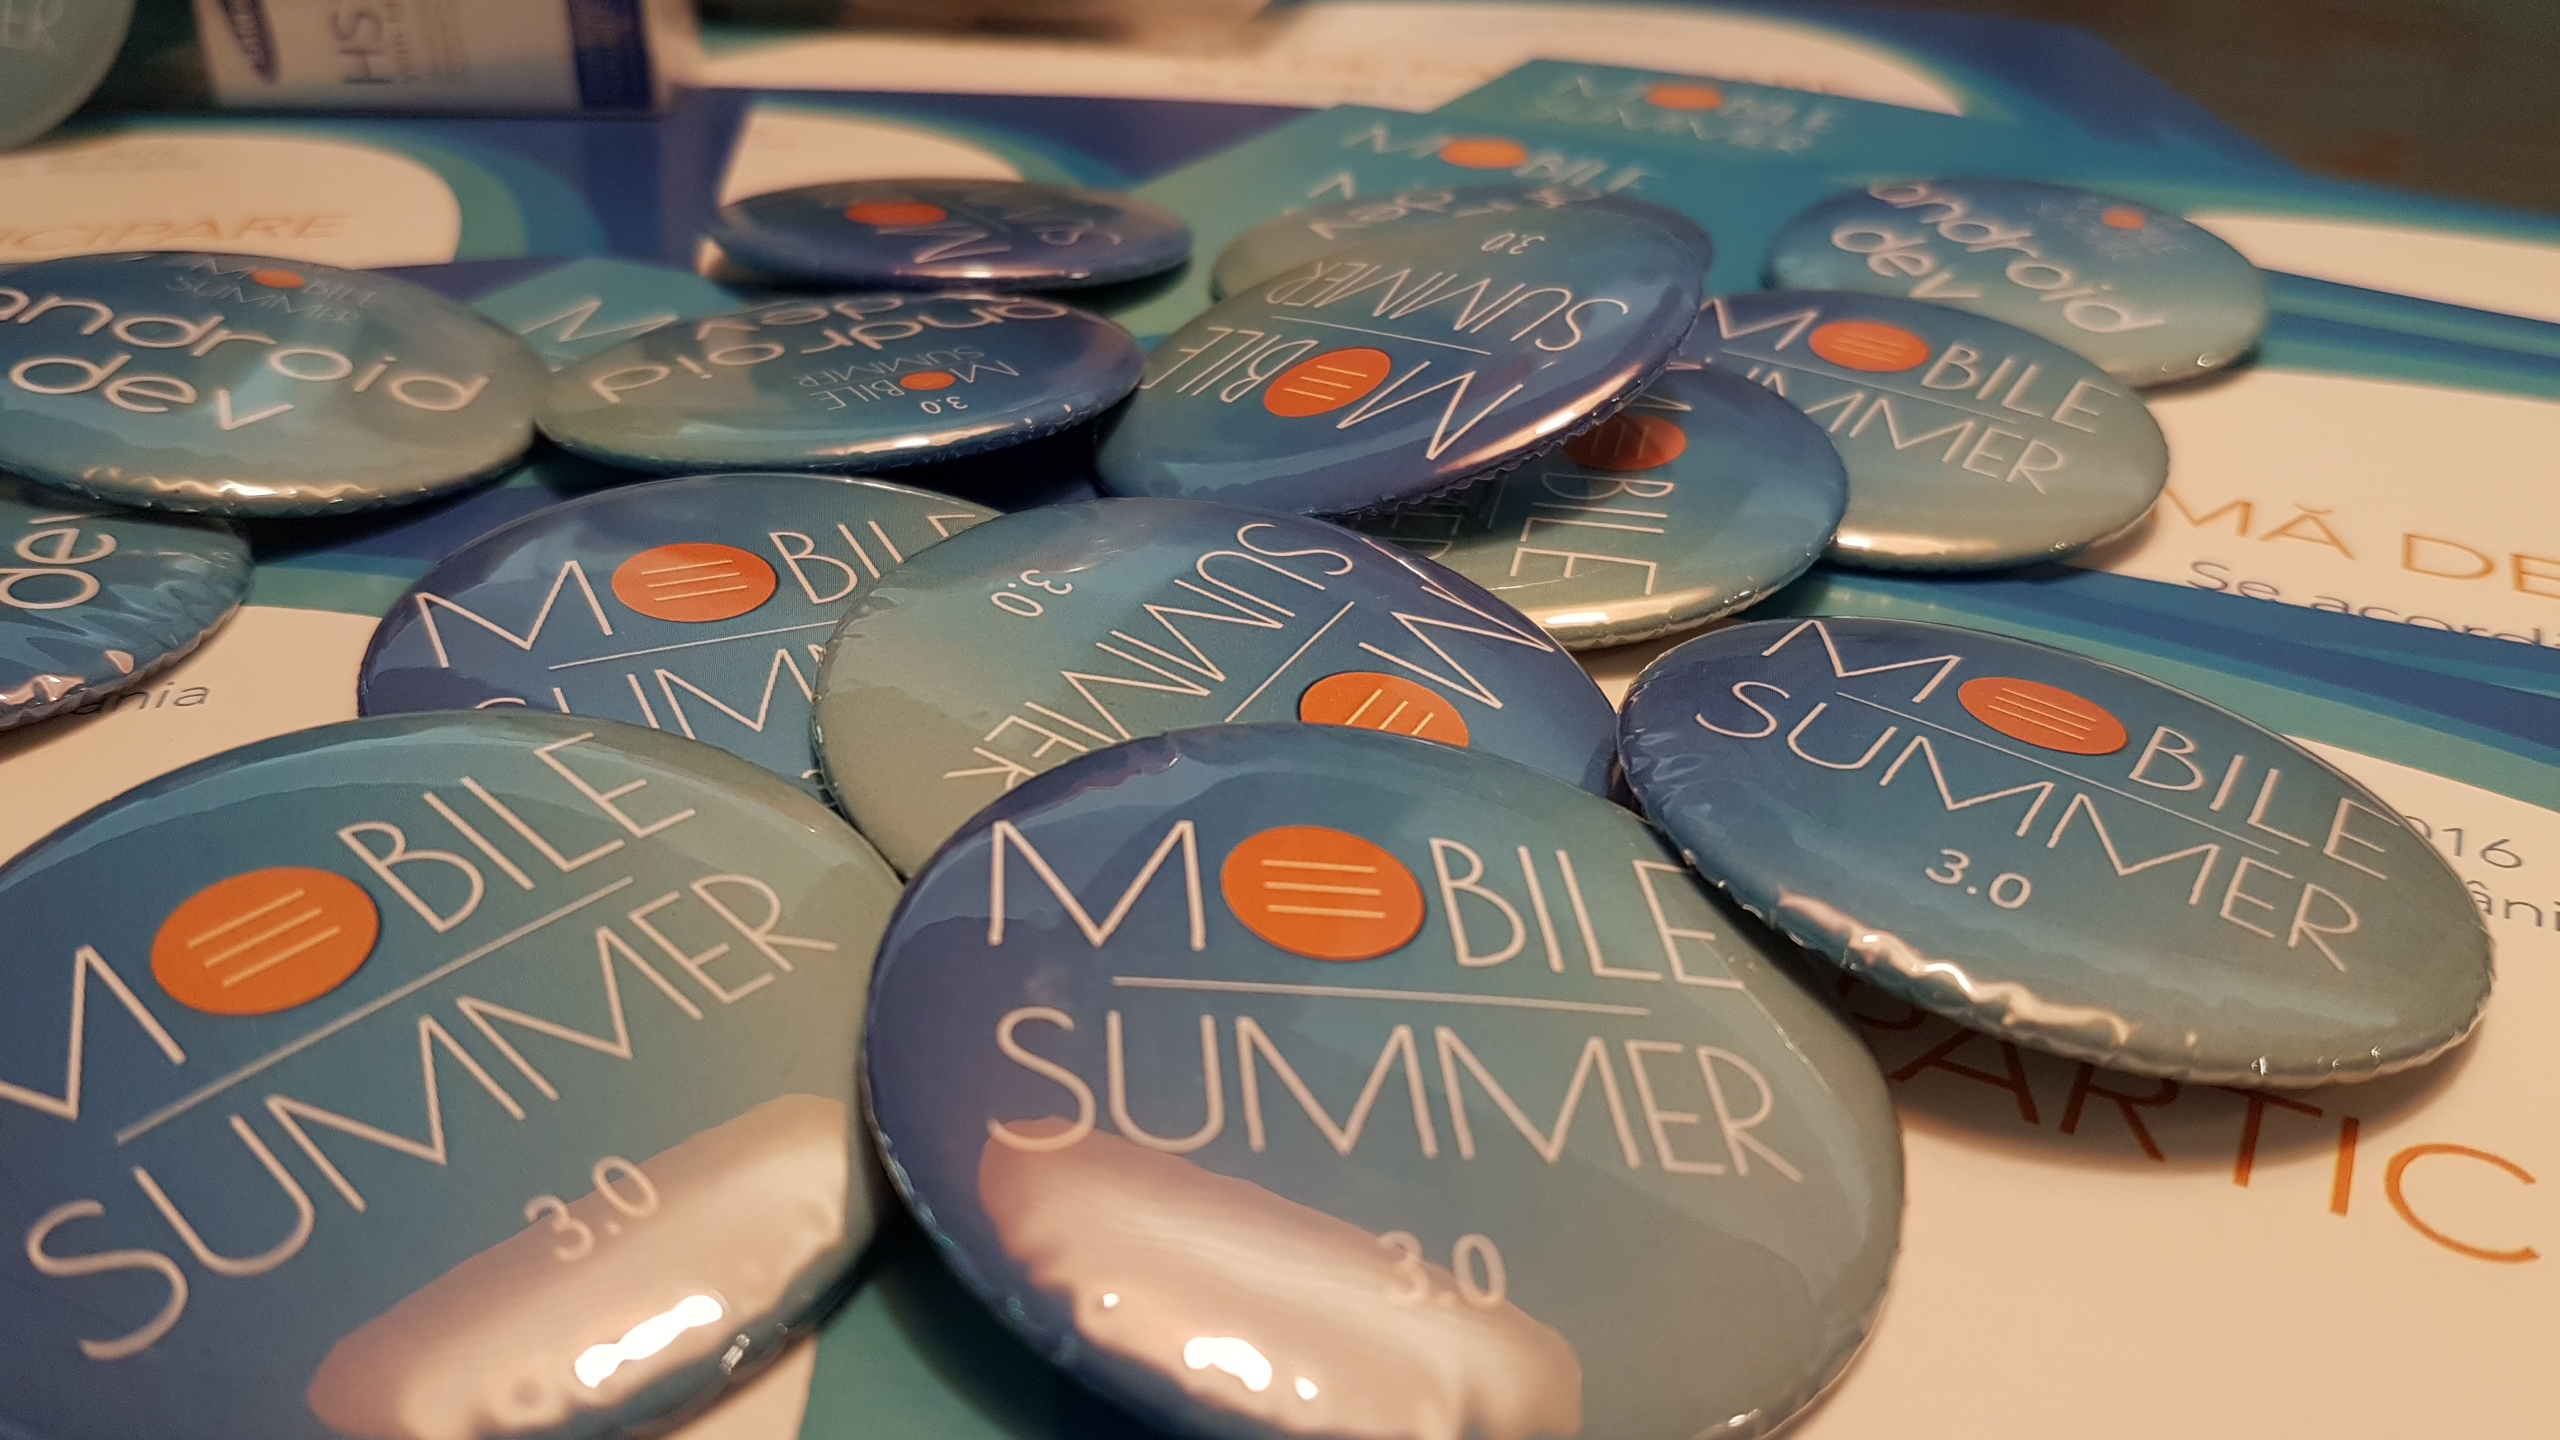 Mobile Summer - apps and awards